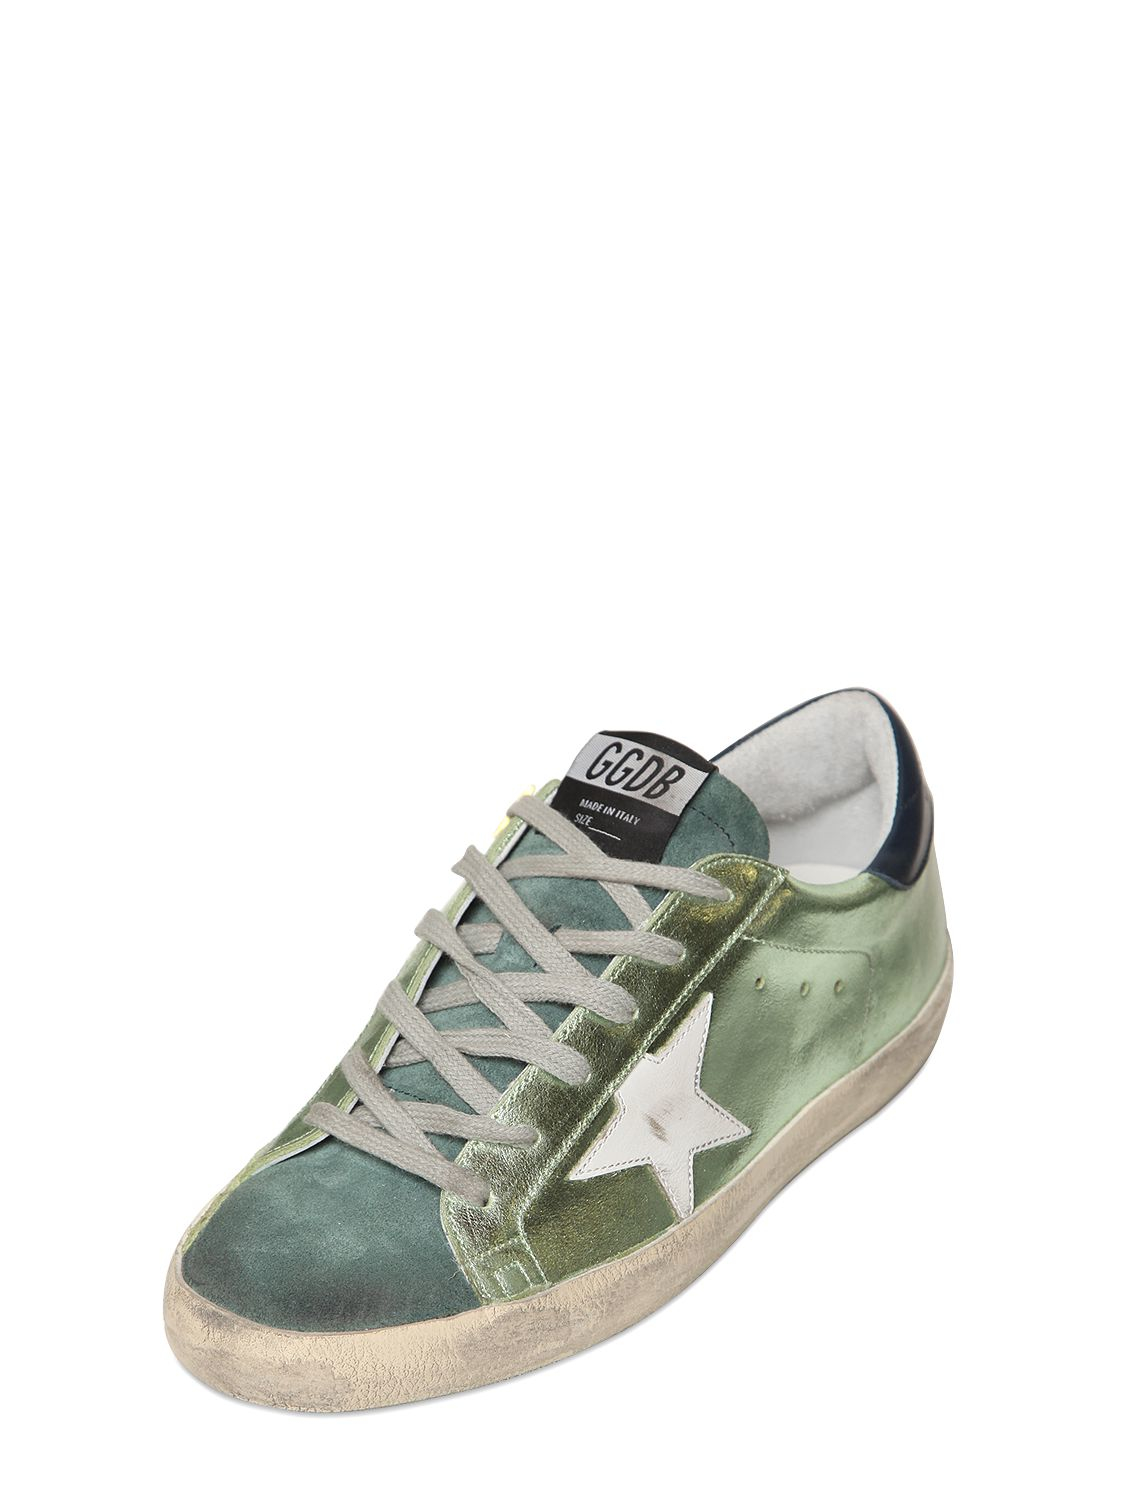 golden-goose-deluxe-brand-light-green-10